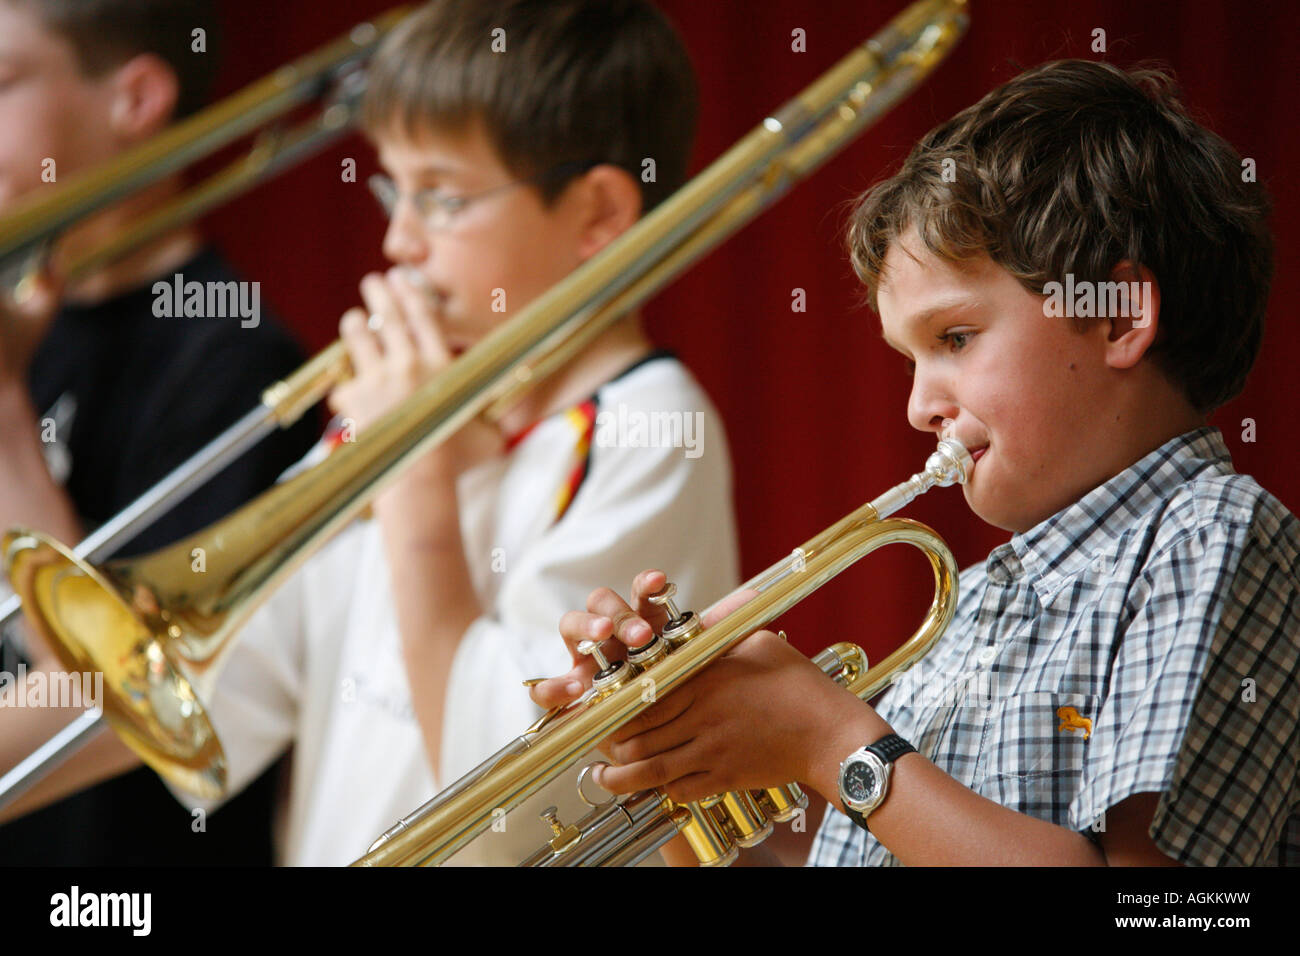 kids making music - Stock Image